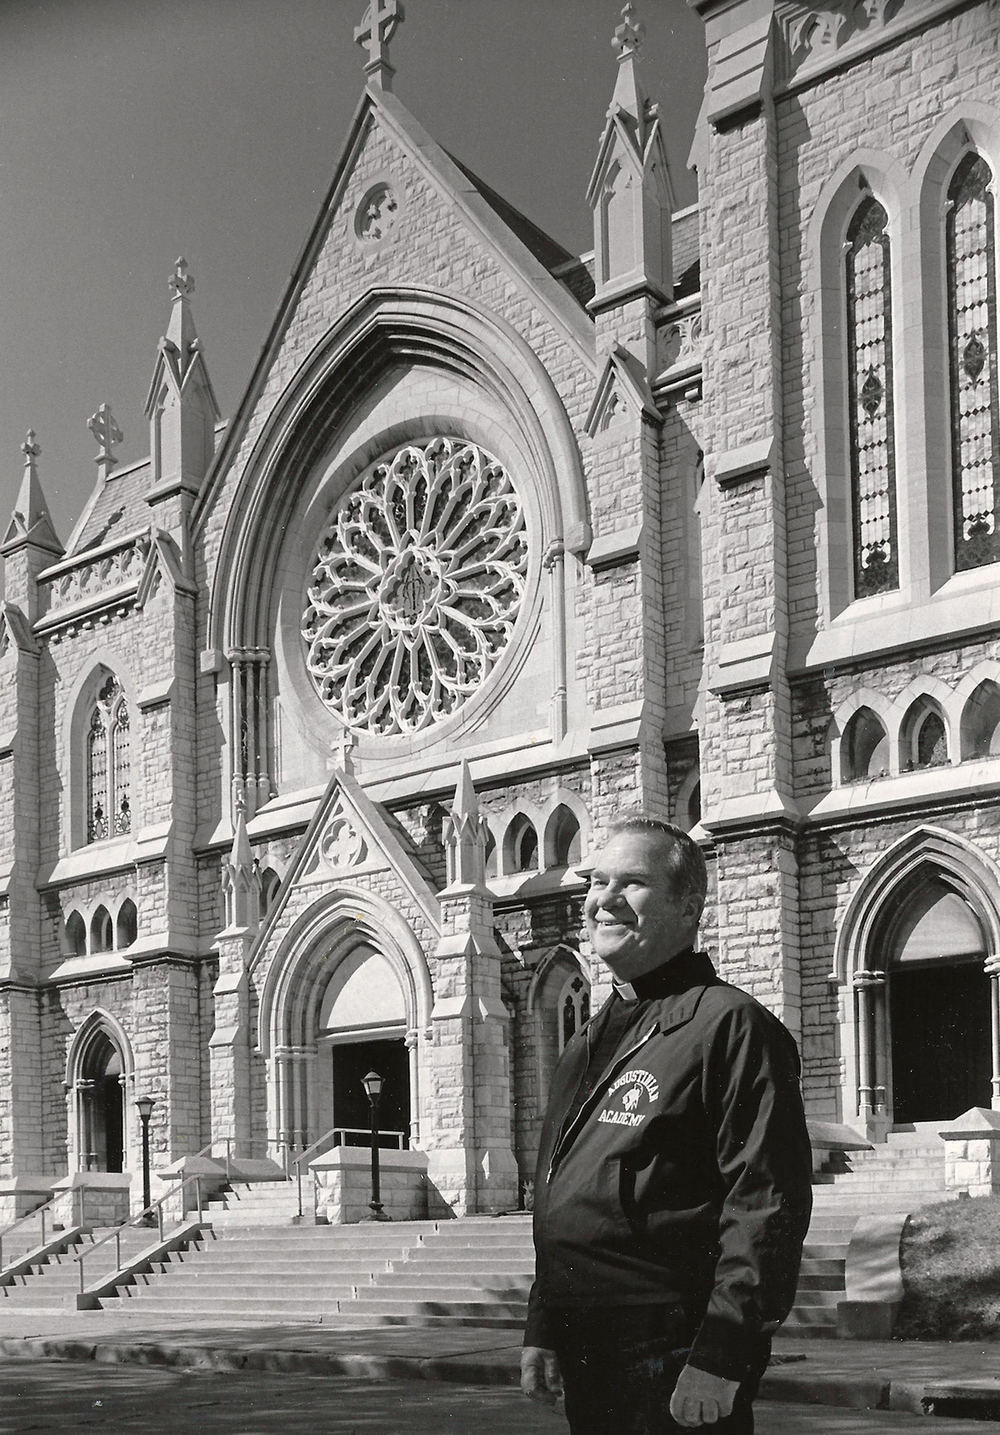 Fr. Jack Gavin, O.S.A. was the Pastor of Immaculate Conception/St. Henry Parish in St. Louis for many years